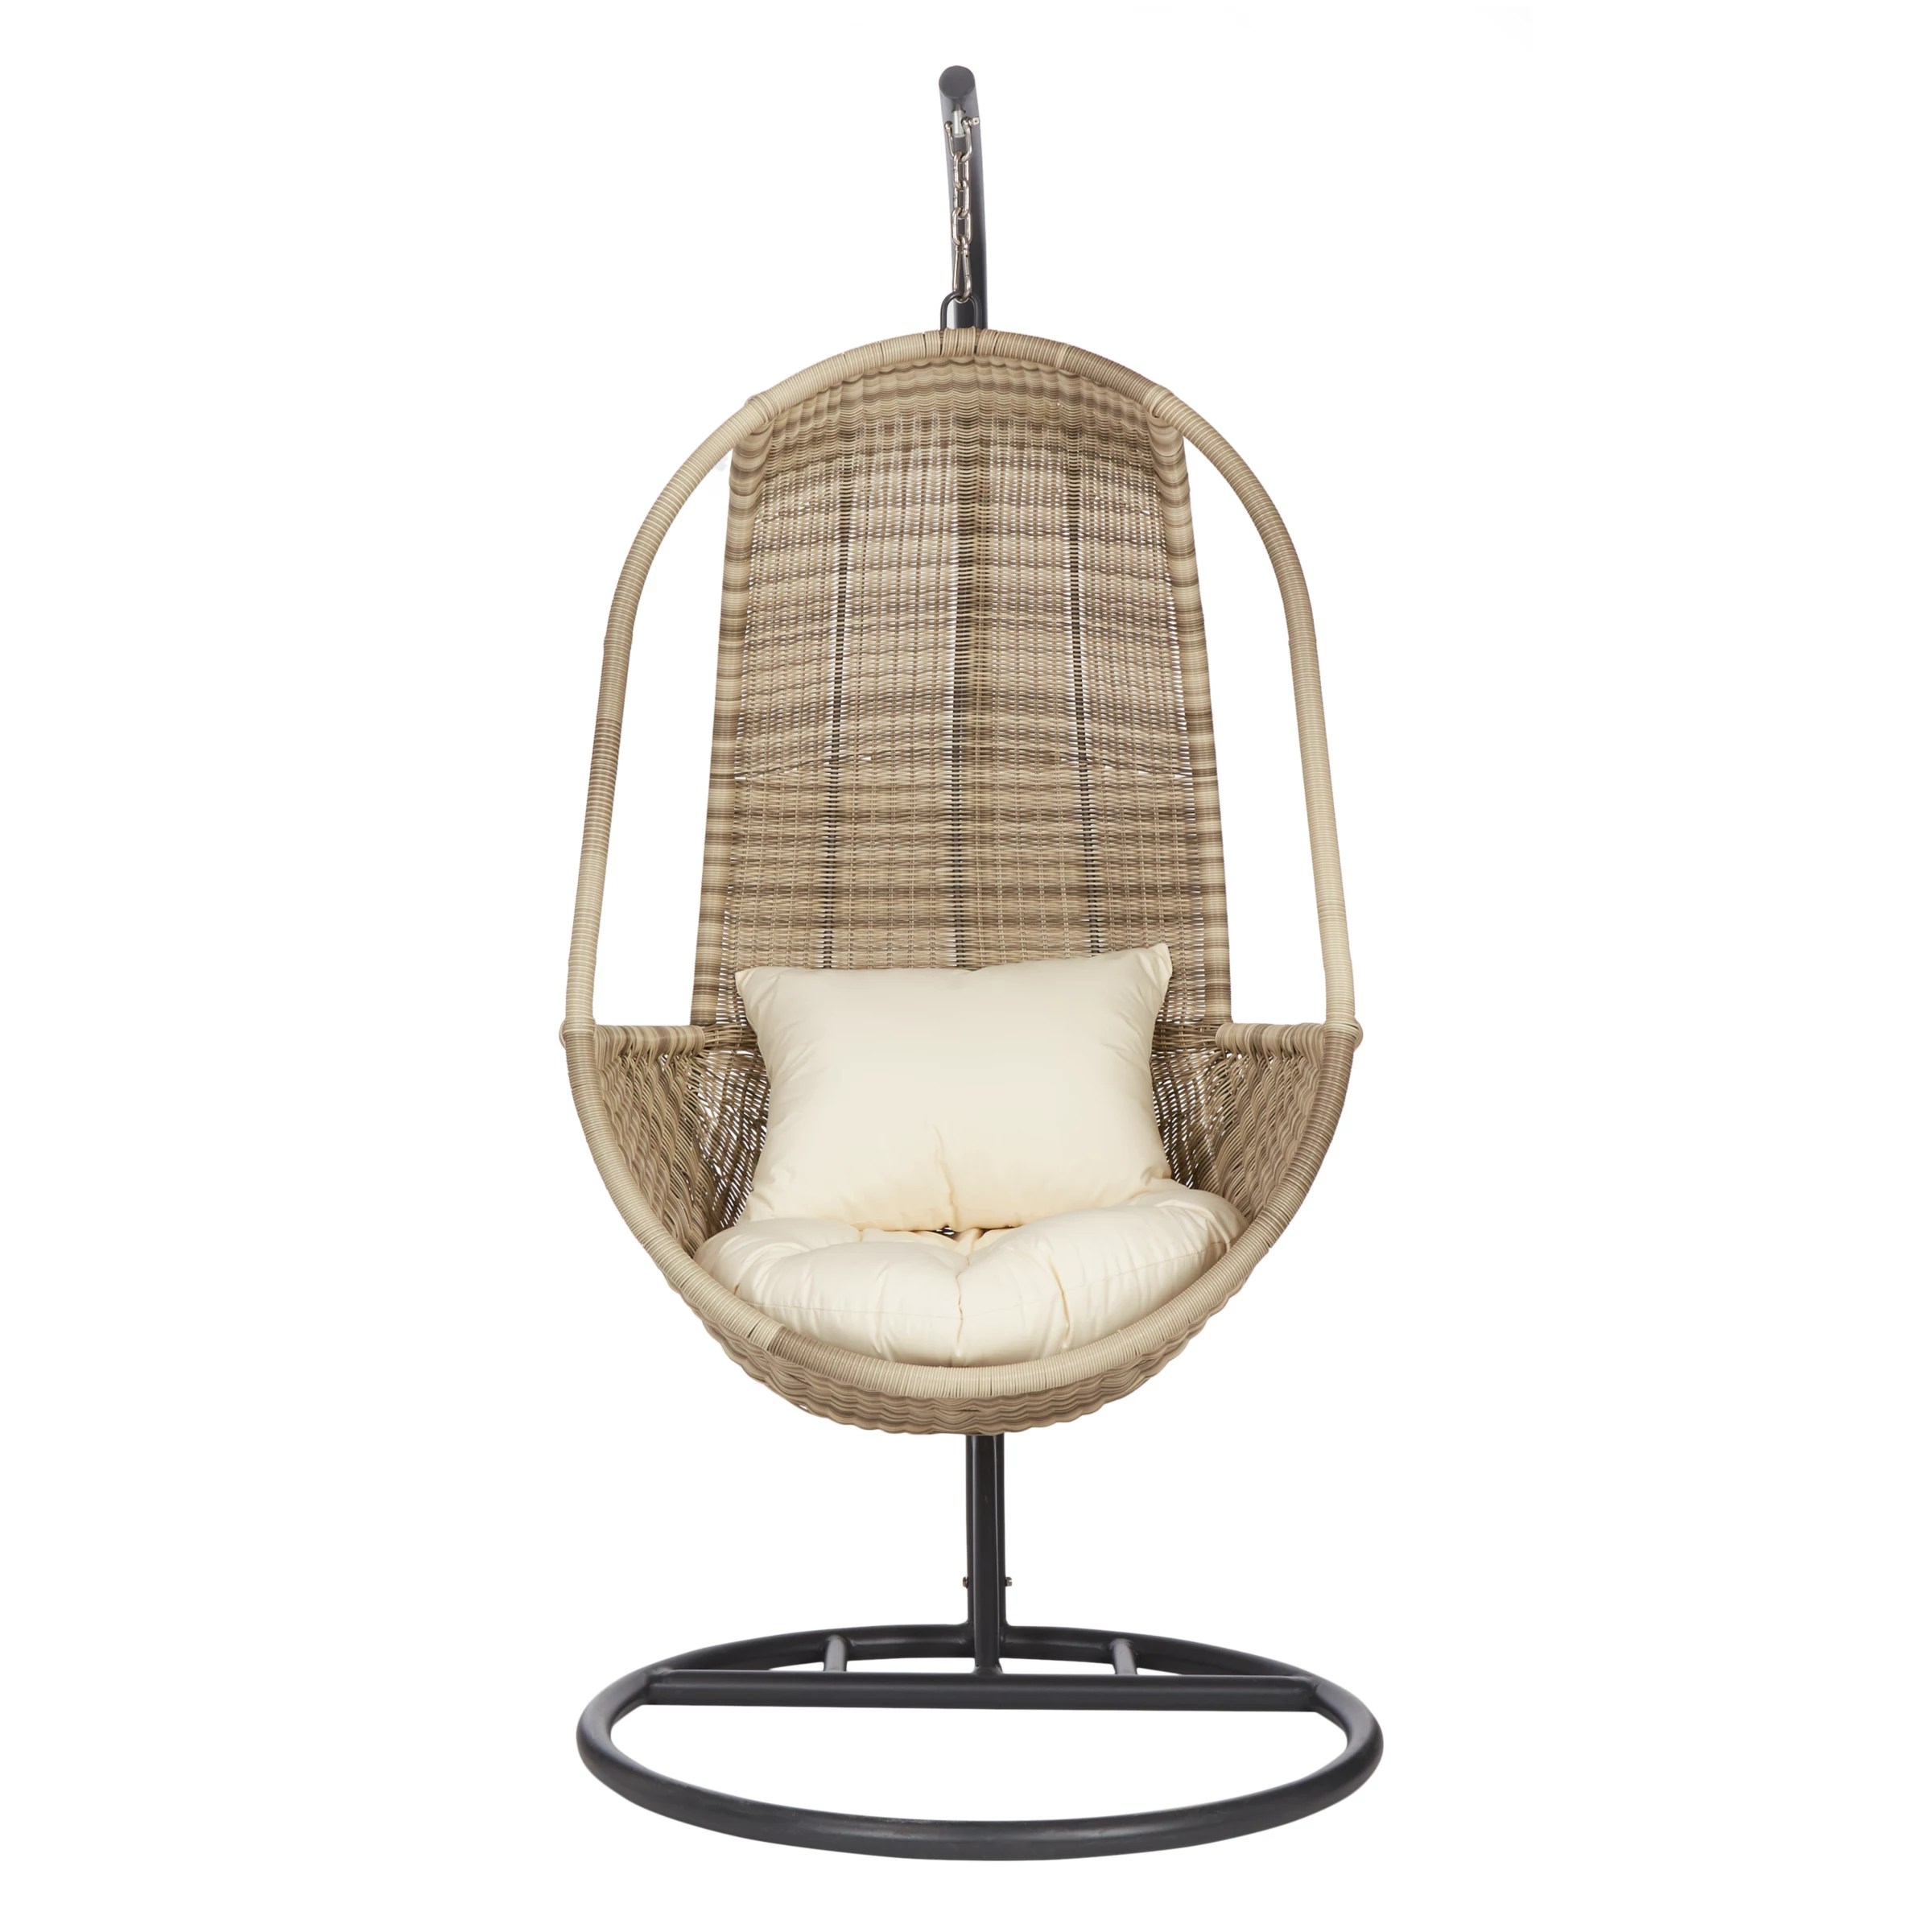 hanging chair qatar tables and chairs rental john lewis partners dante pod at buyjohn natural online johnlewis